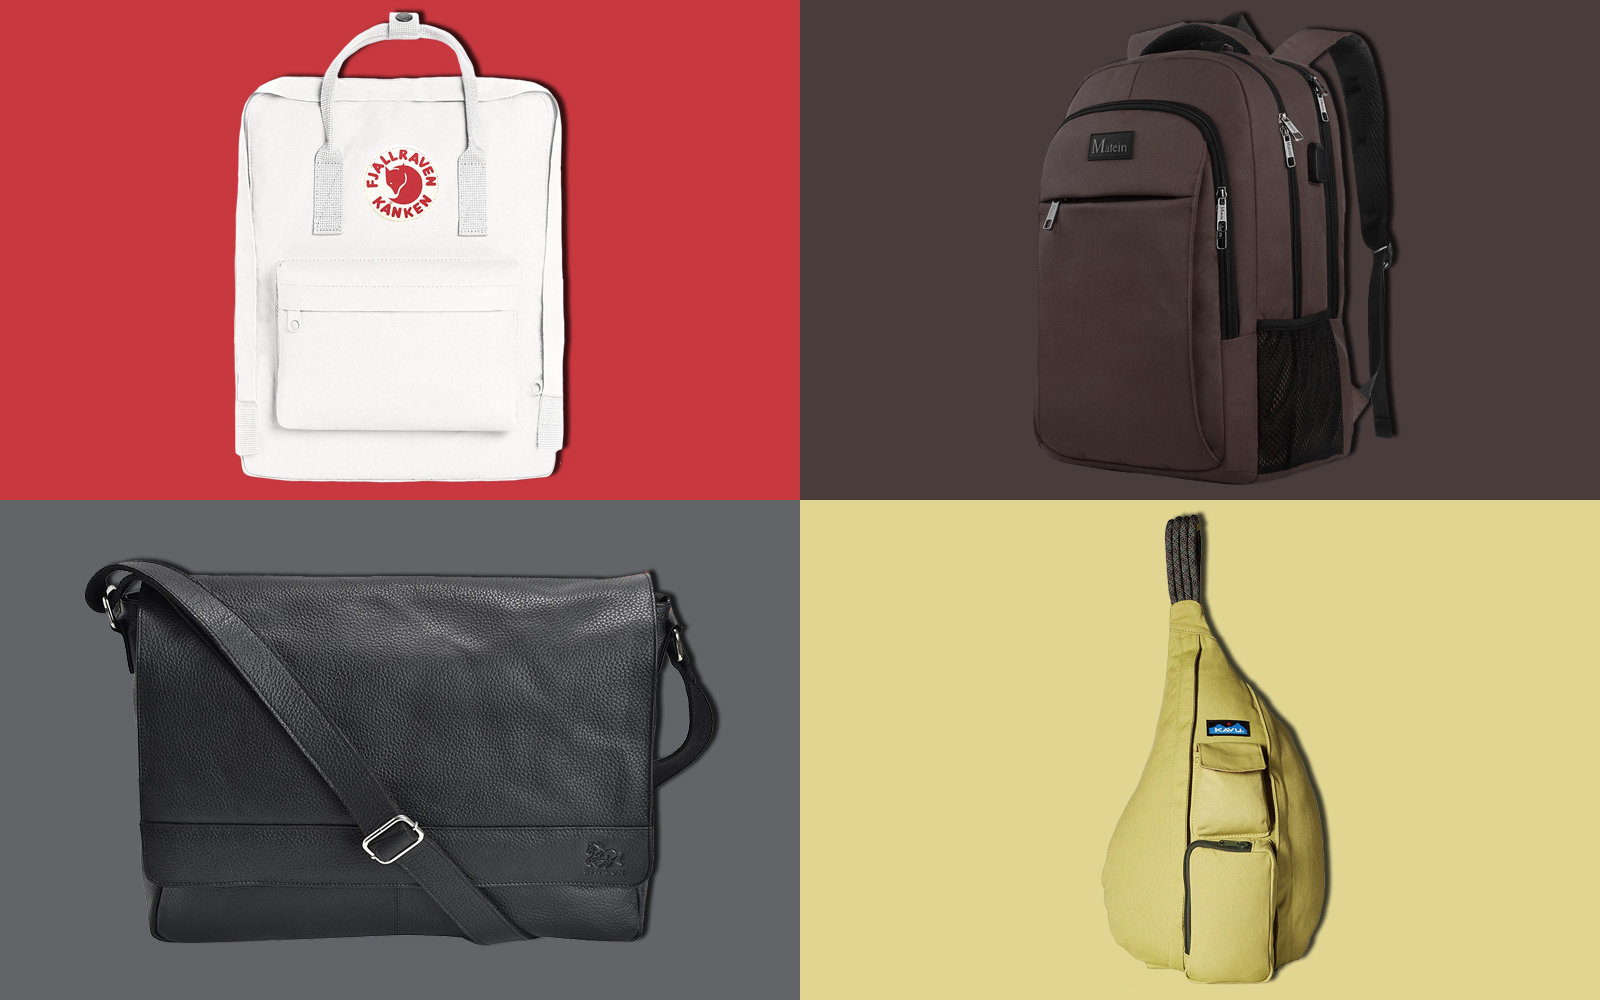 The Most Wished For Travel Bags on Amazon